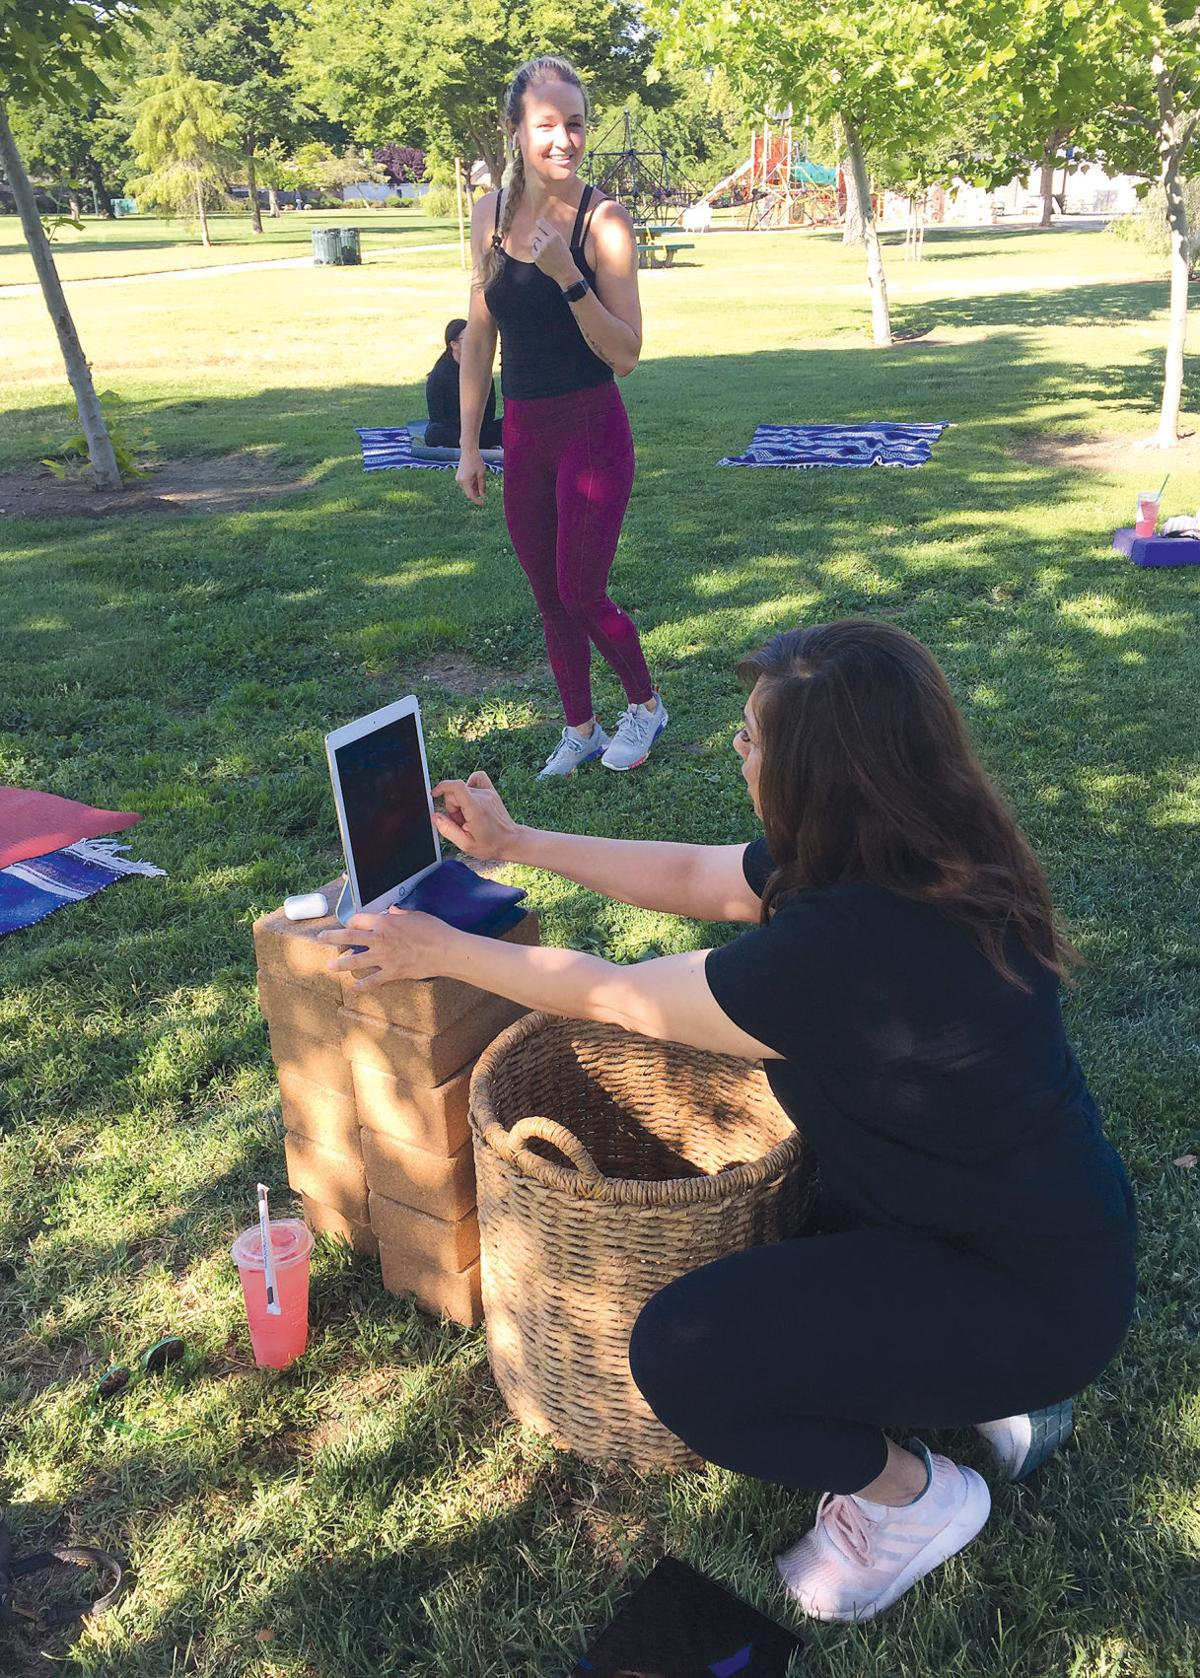 Yoga in Lincoln Park